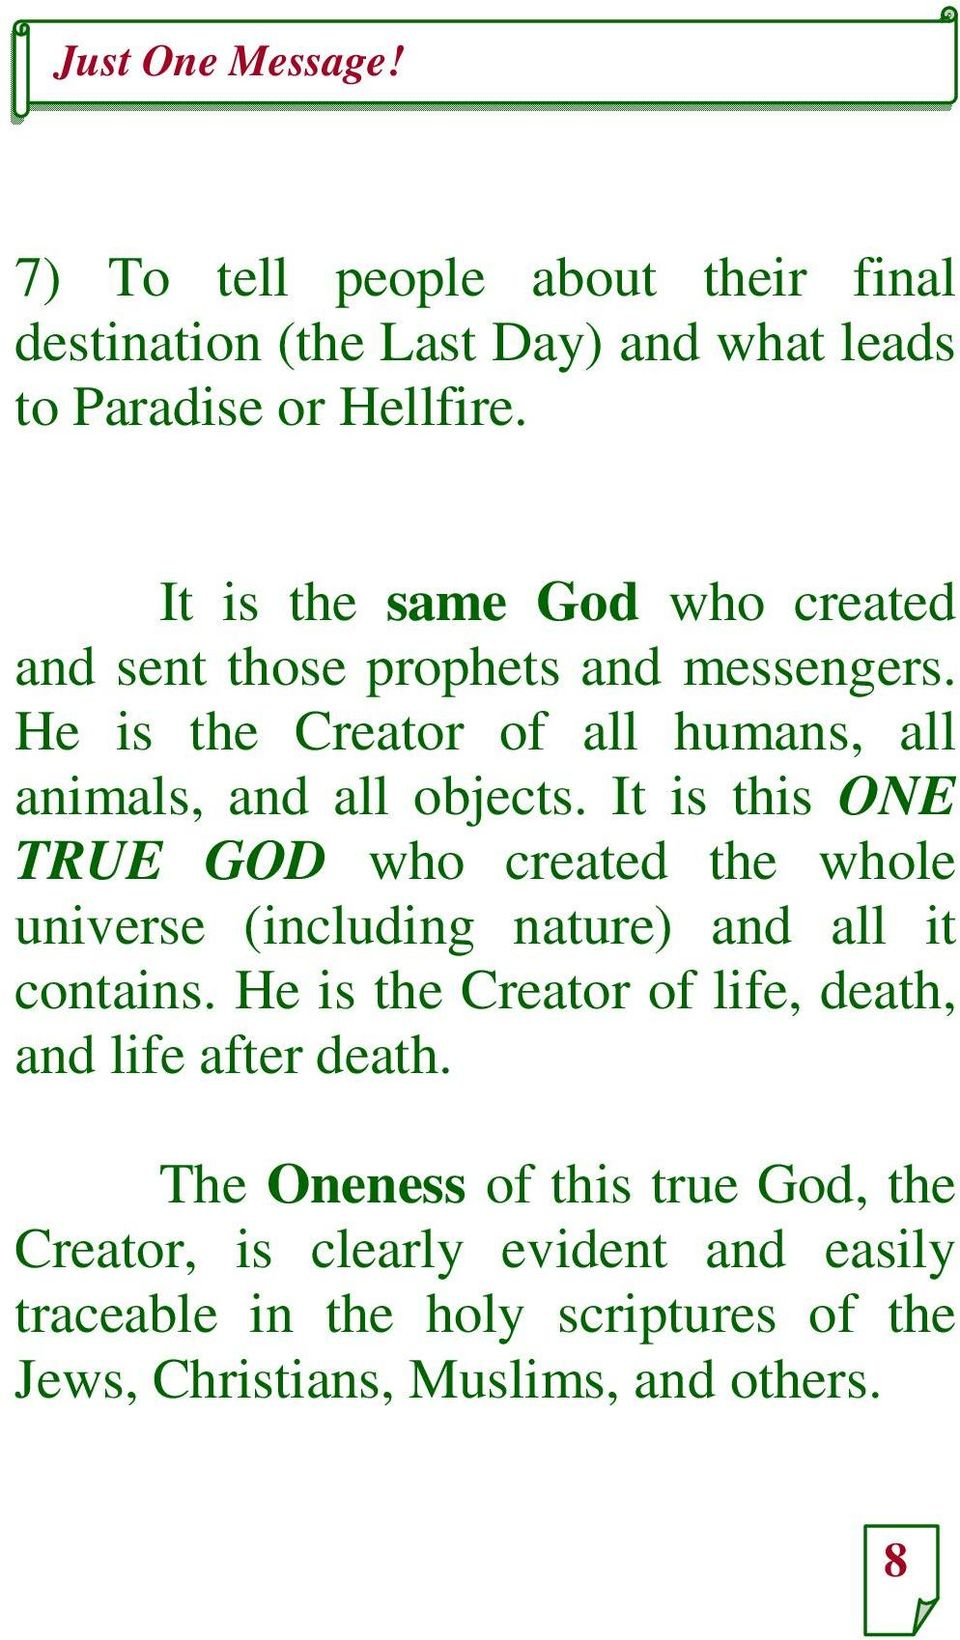 It is this ONE TRUE GOD who created the whole universe (including nature) and all it contains.